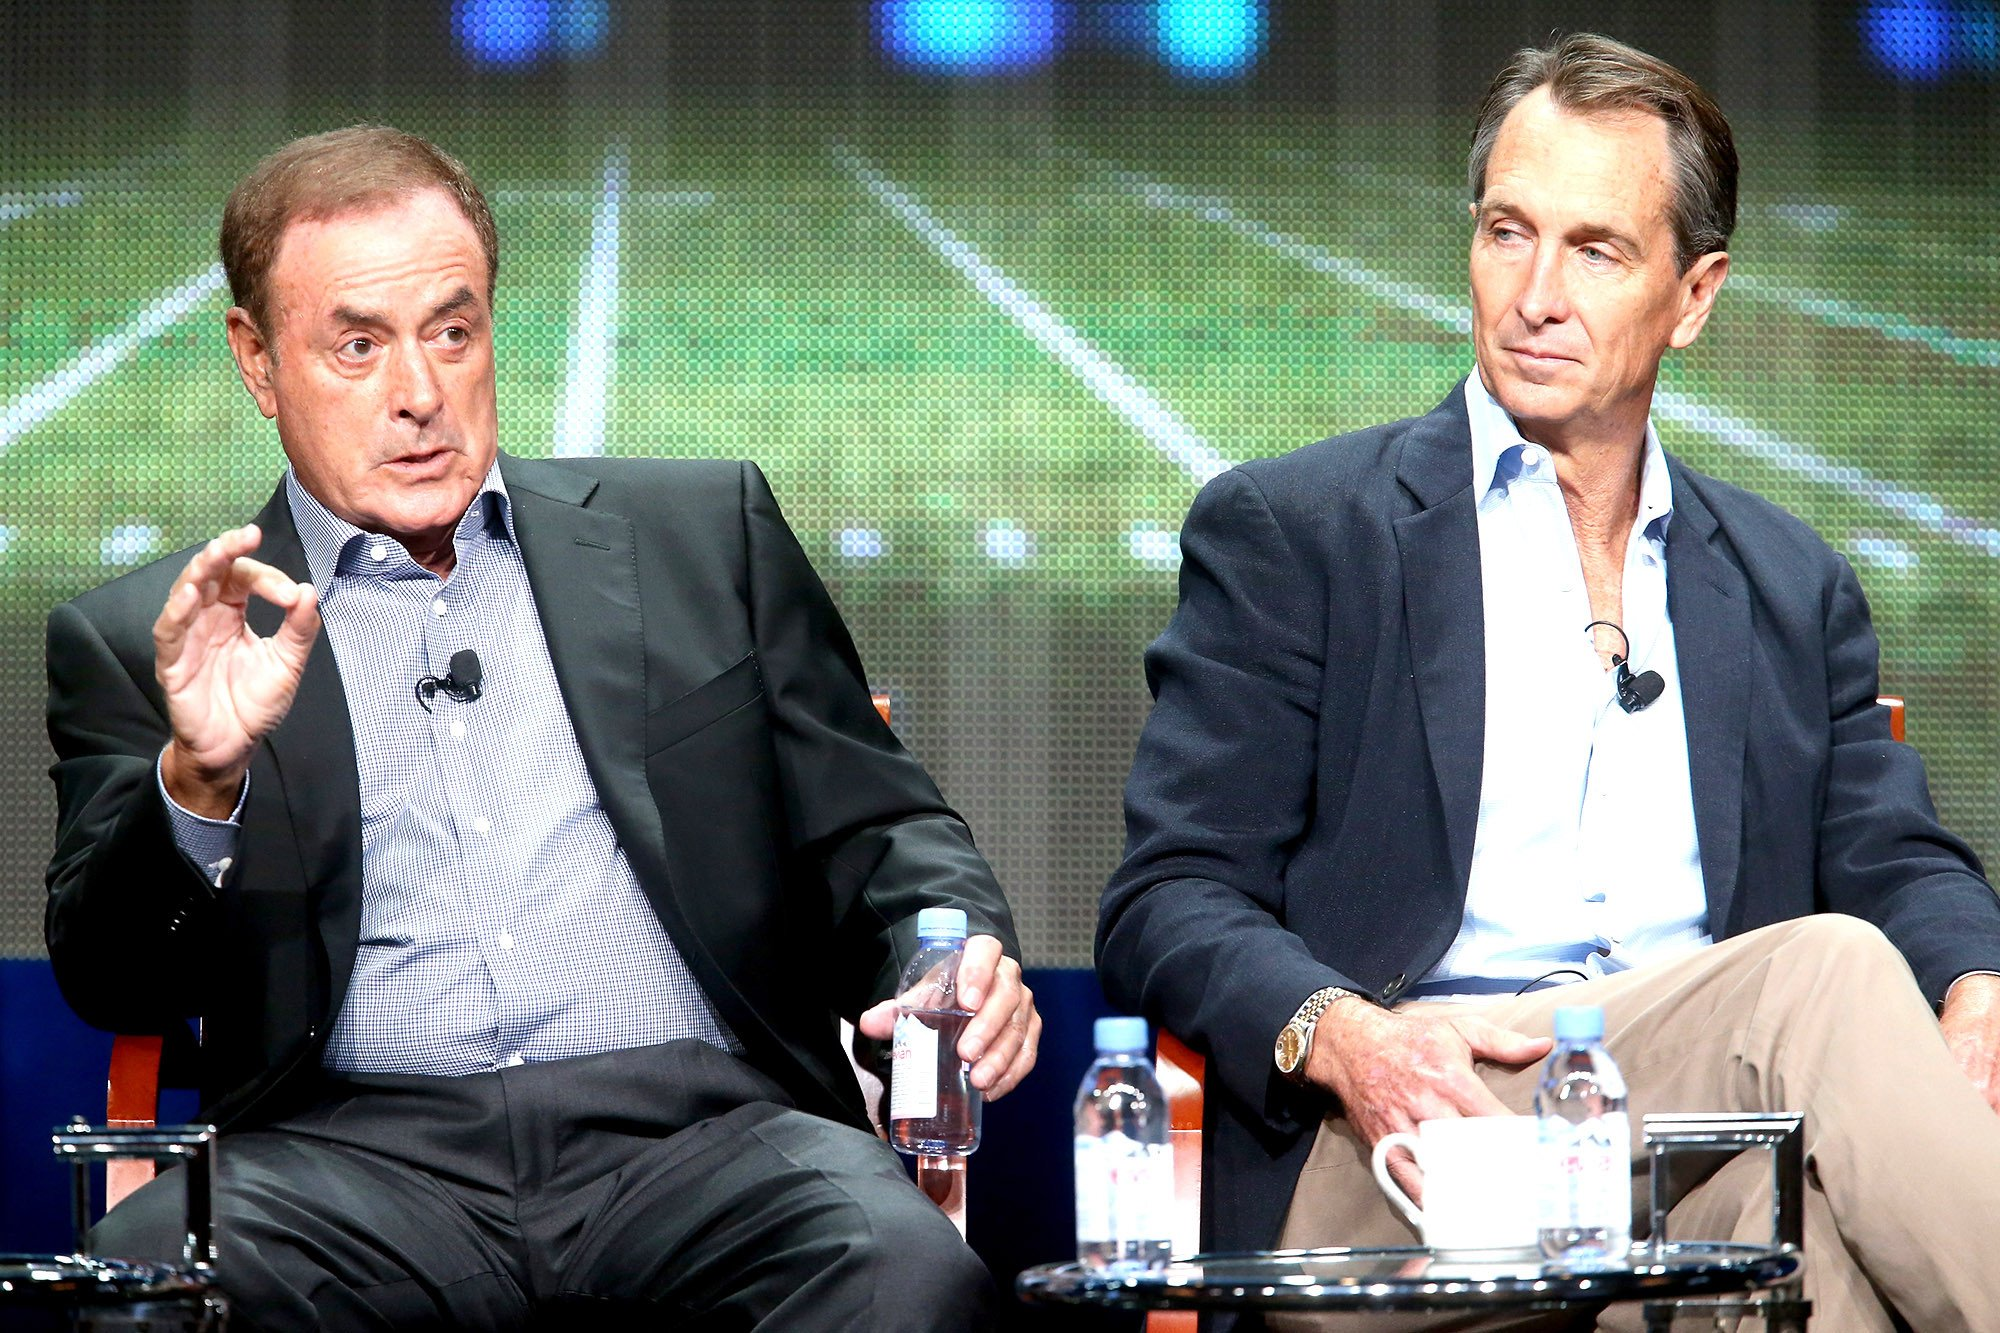 Al Michaels tries to save Cris Collinsworth from angry Eagles mob